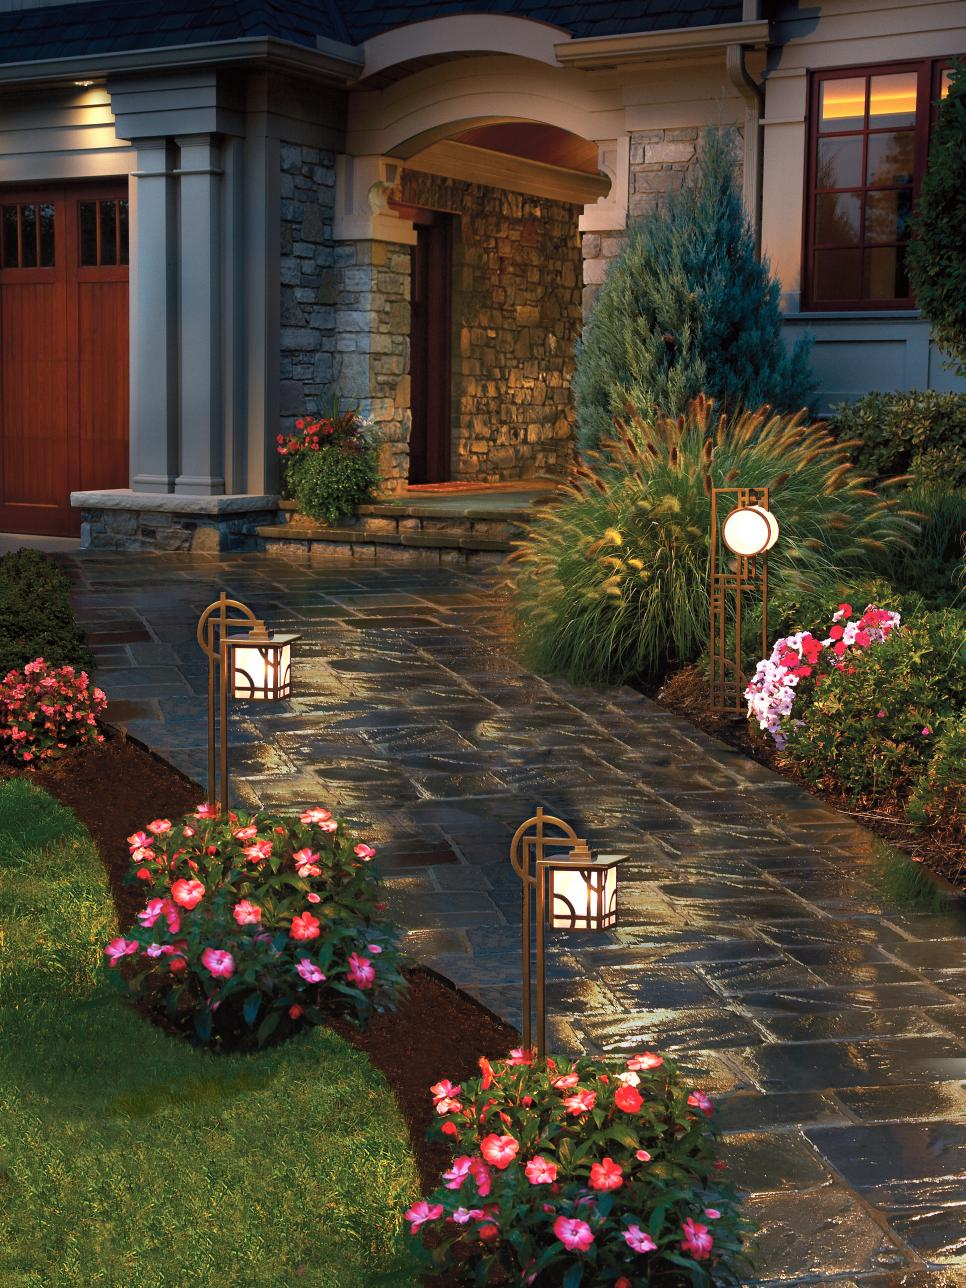 CI-kichler-lighting_stake-landscape-lighting-path5_s3x4.jpg.rend.hgtvcom.966.1288.jpeg